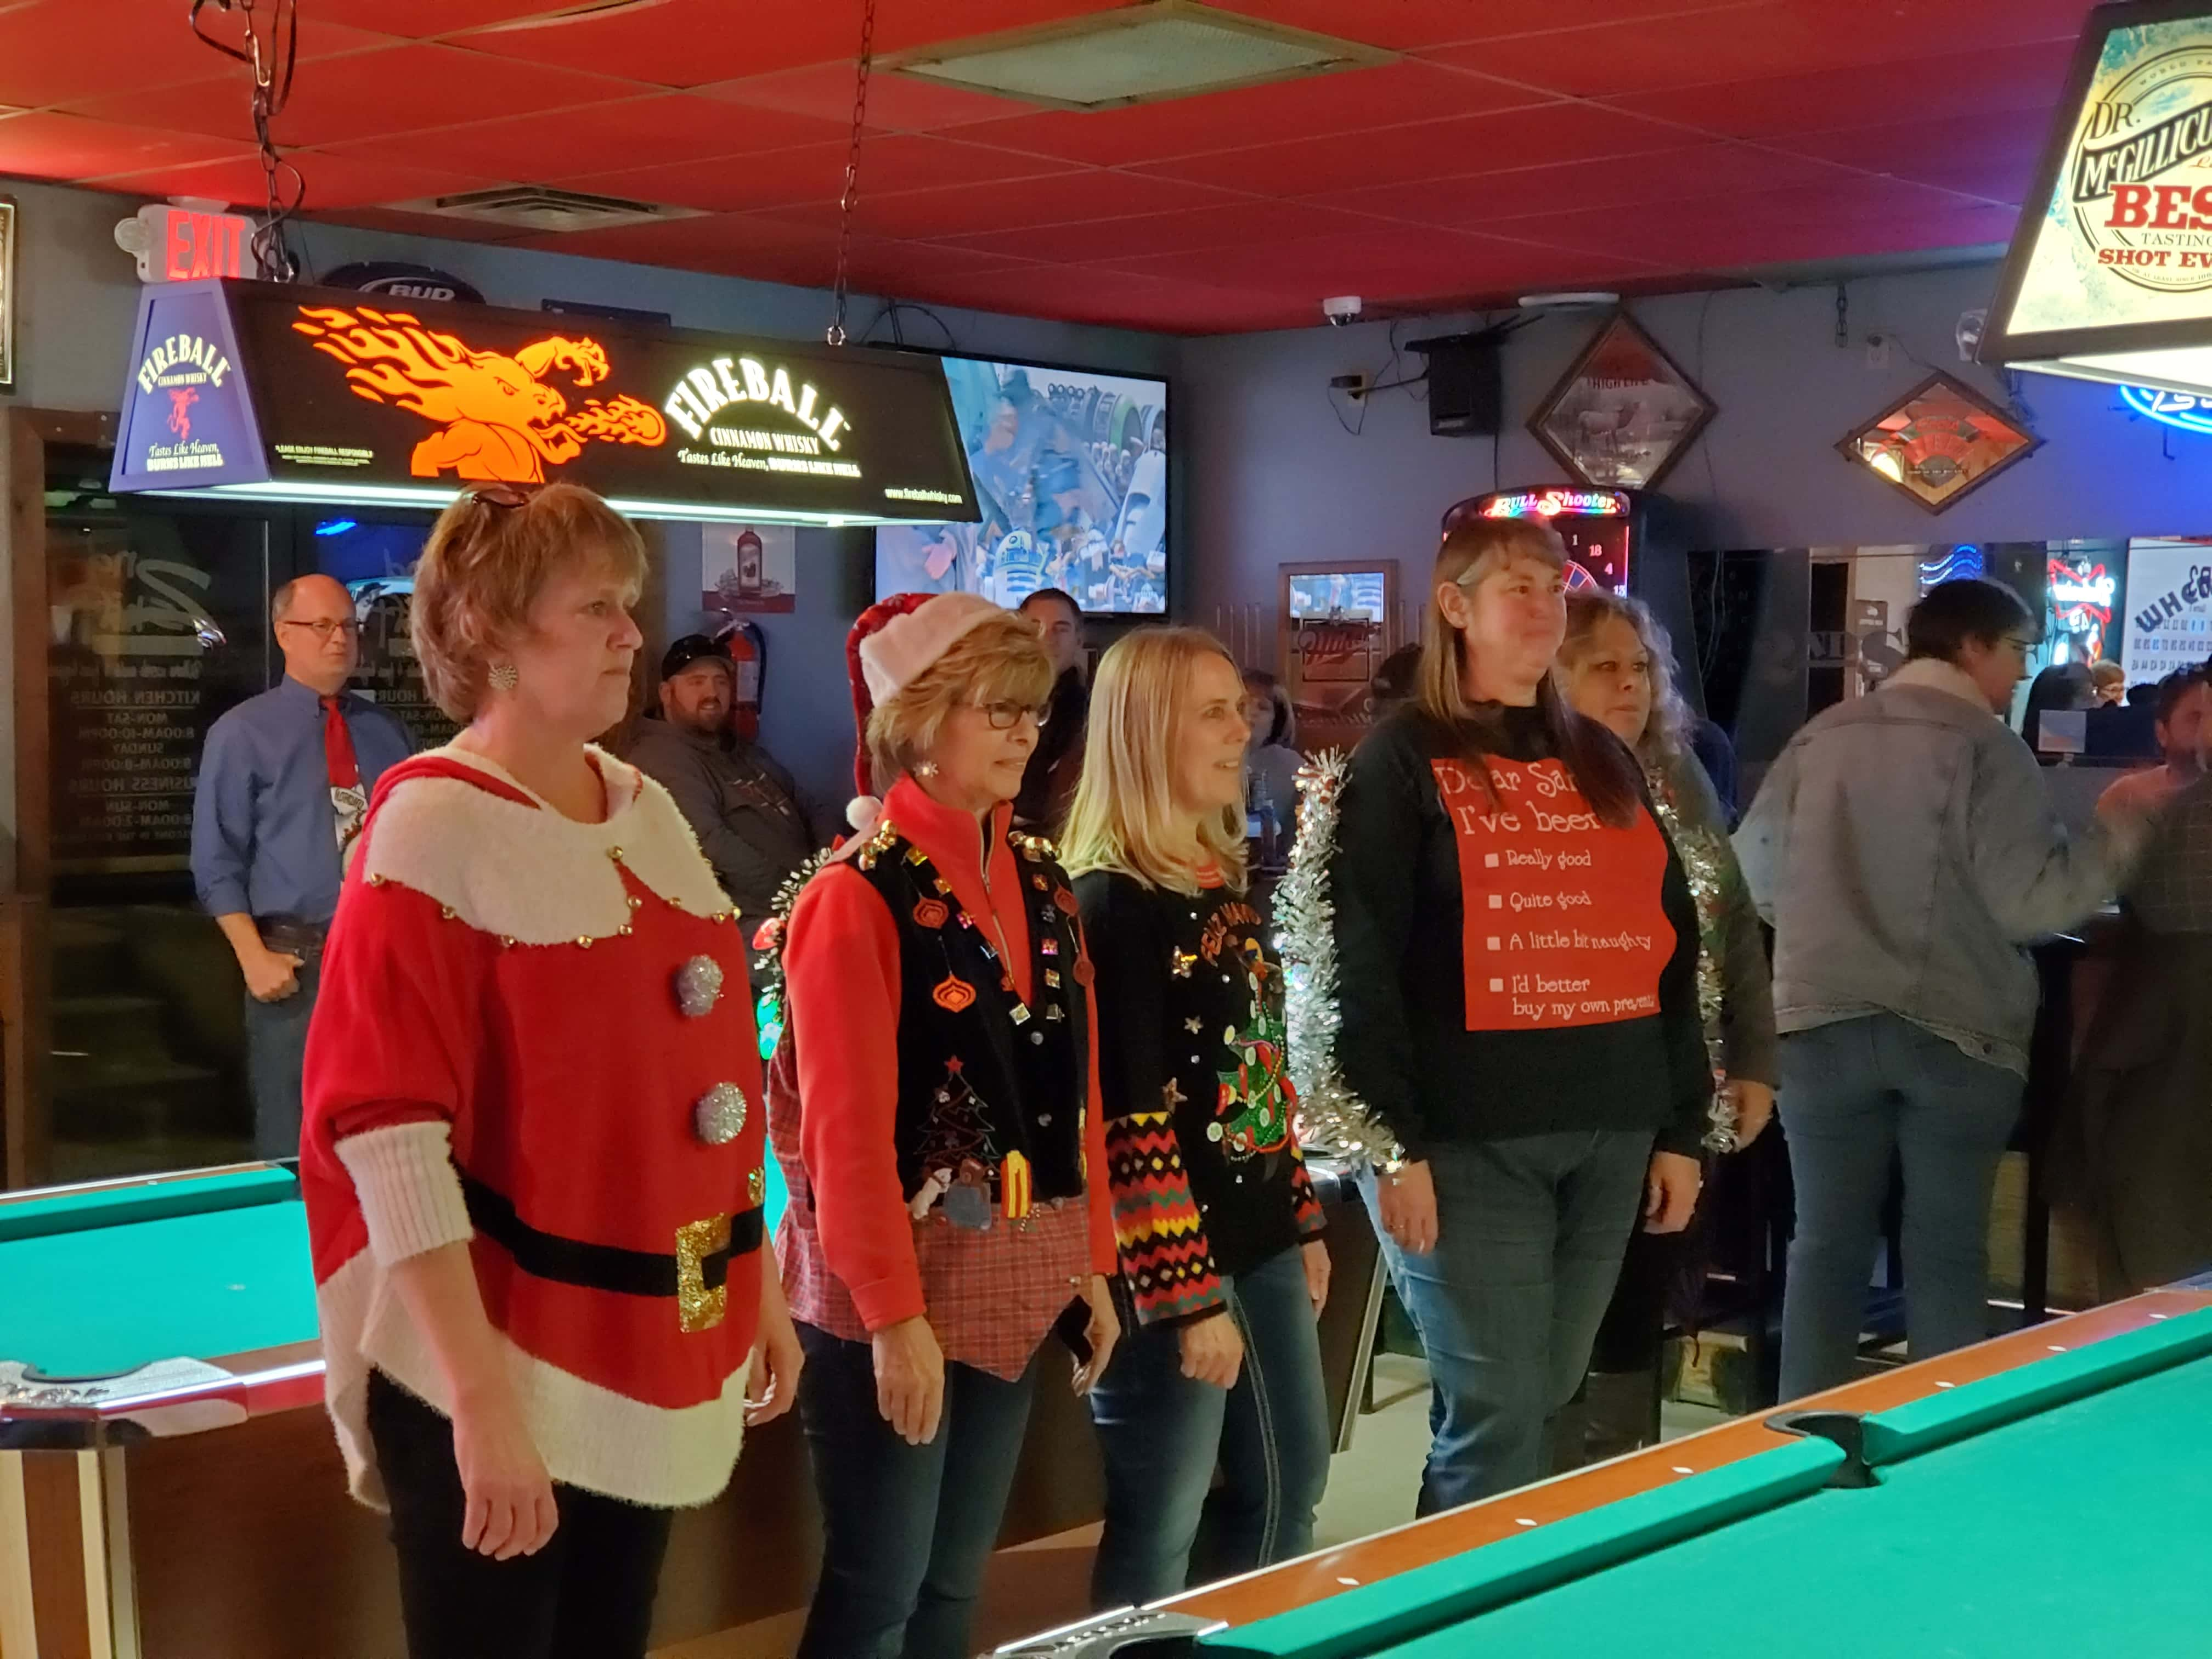 The Contestants for the Ugly Christmas Sweater Contest